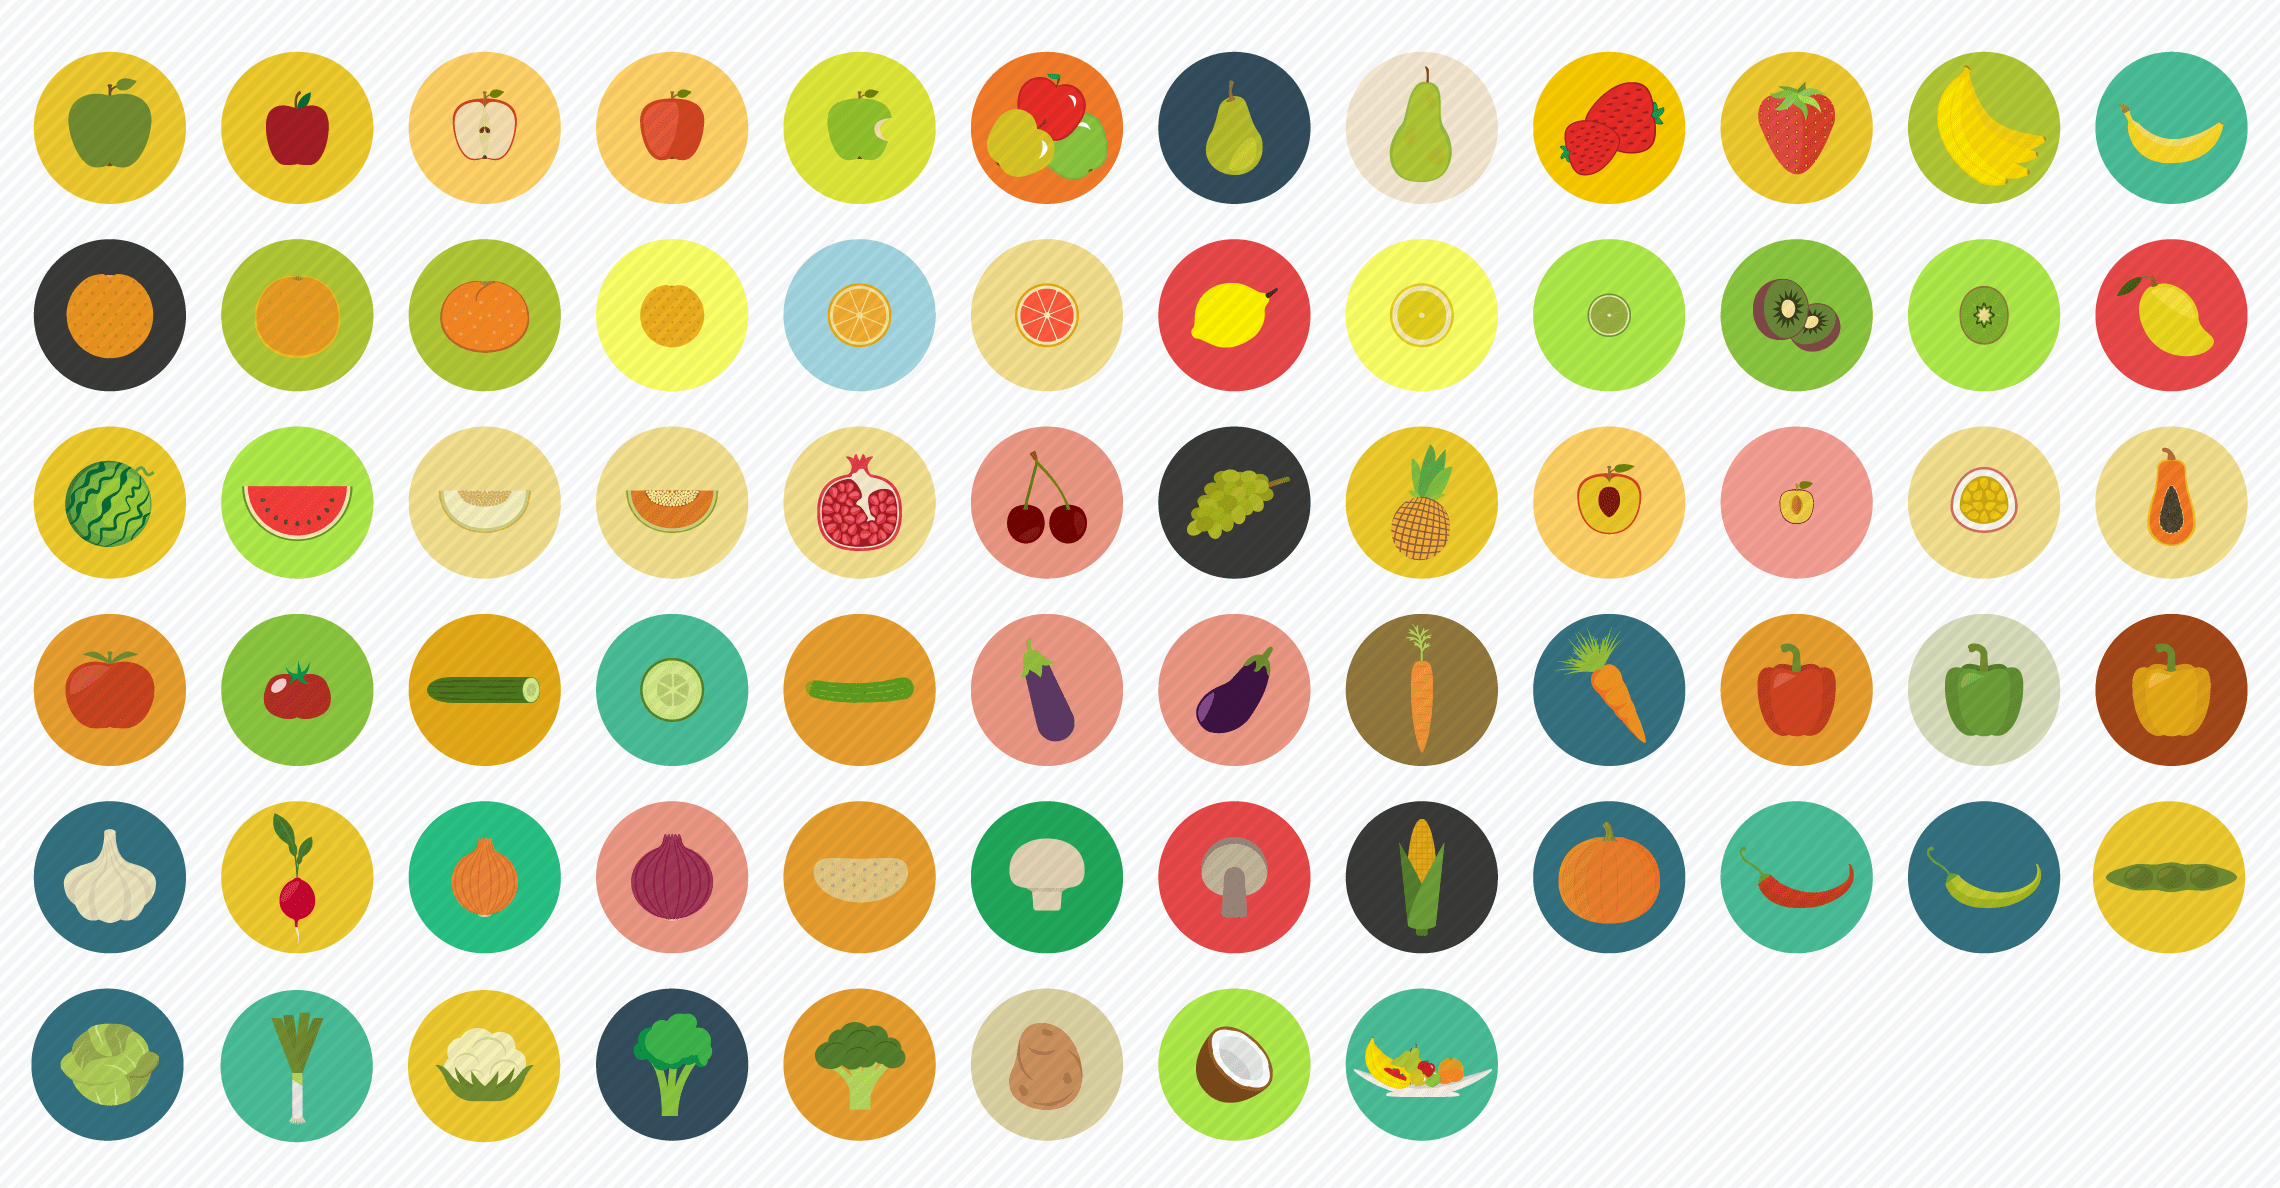 Food_Fruit_Vegetables flat icons